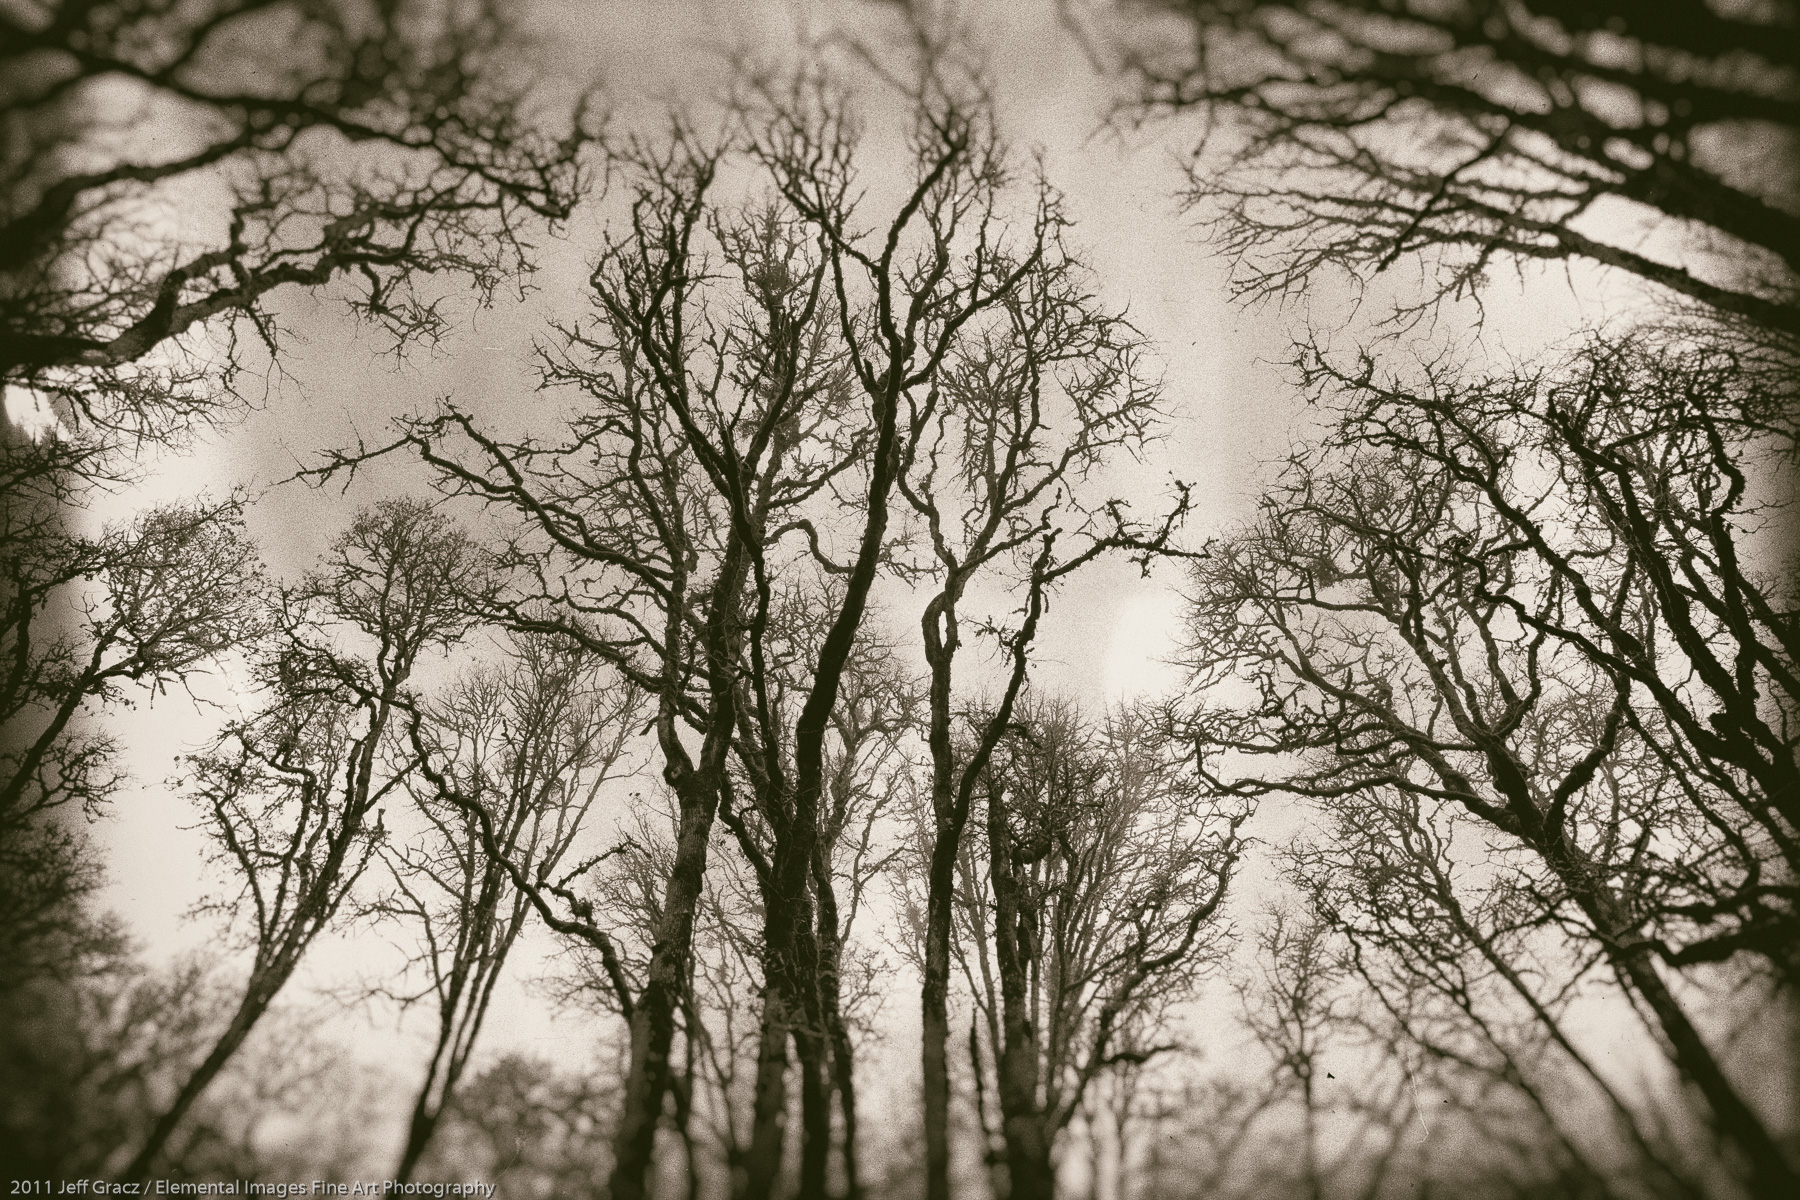 Branches XVI |  | OR | USA - © 2011 Jeff Gracz / Elemental Images Fine Art Photography - All Rights Reserved Worldwide